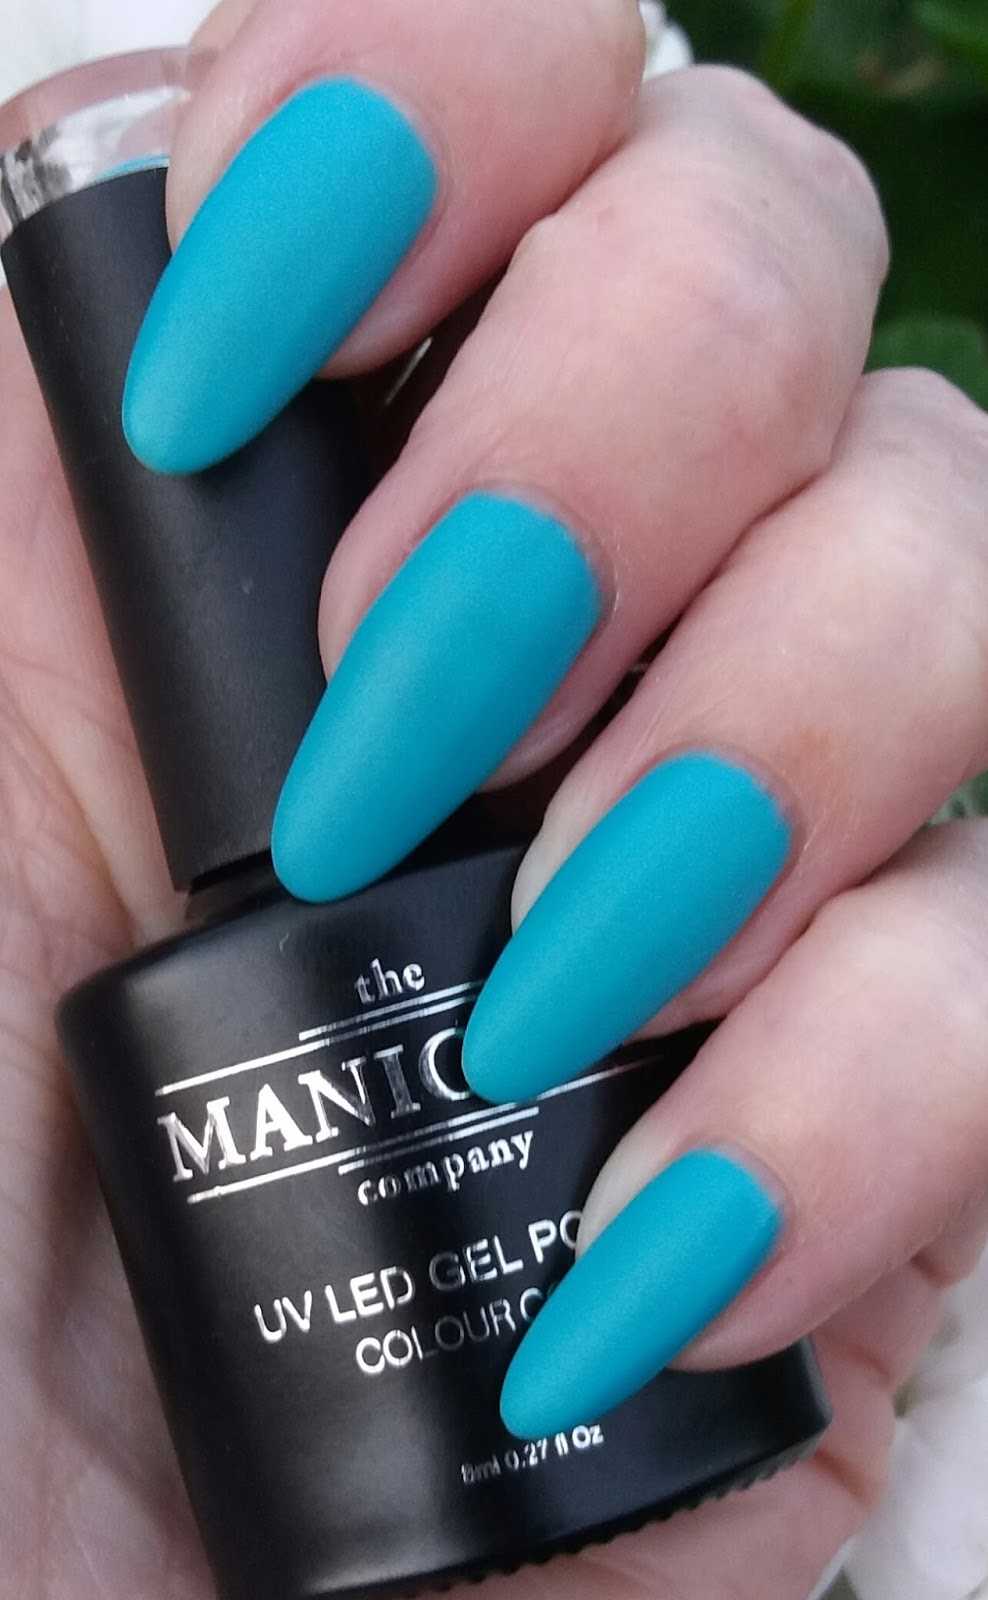 This Shade Leans More To A Blue Teal Than Green And Is Really Lovely Matte Top Coat Does Make These Gels Look So Nice The No Wipe Topcoat Leaves